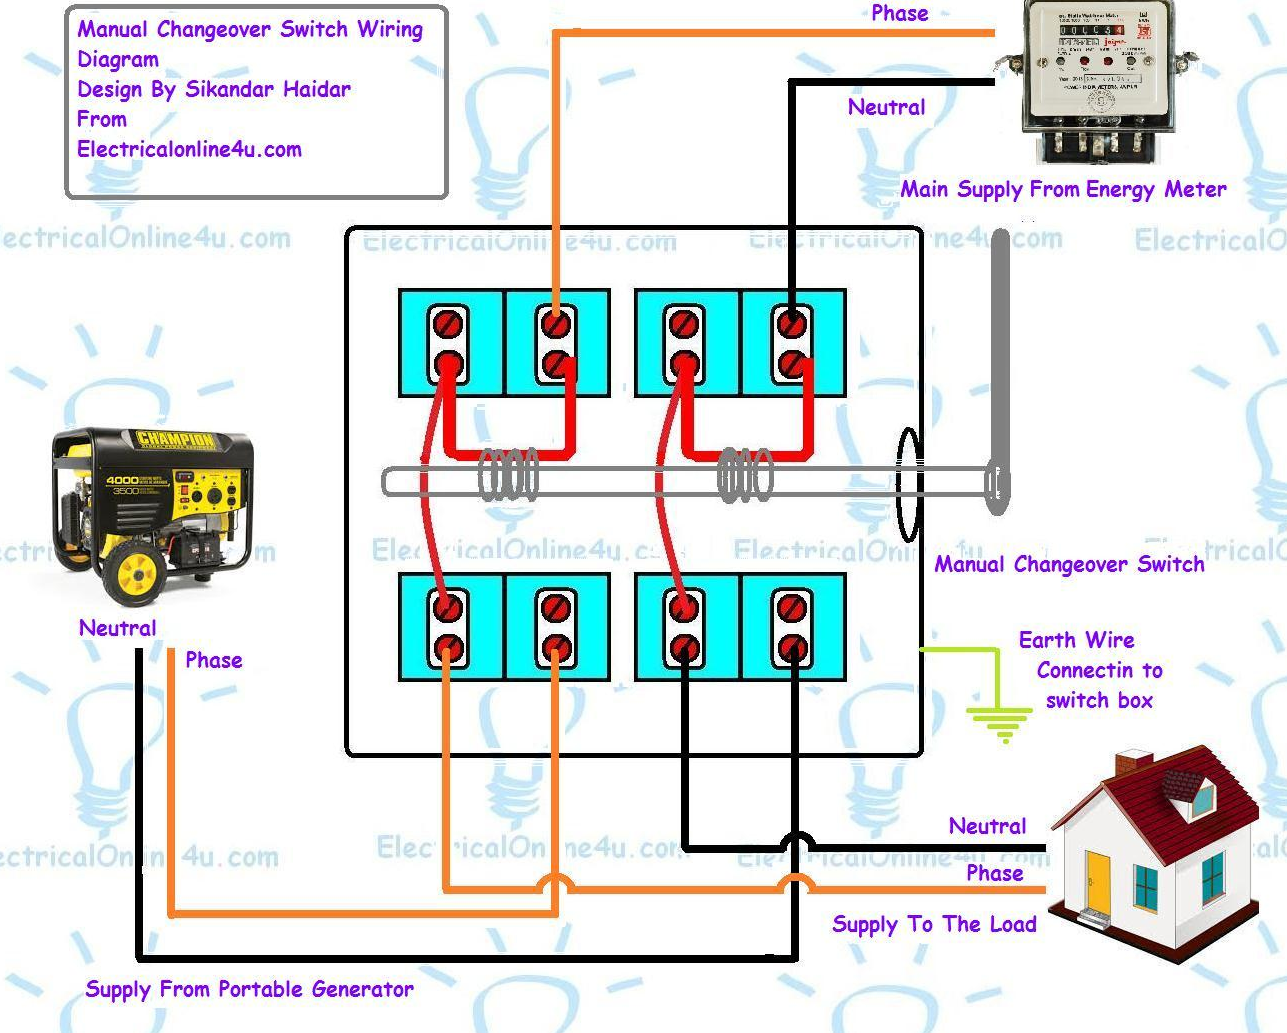 manual%2Bchangeover%2Bswitch%2Bwiring%2Bdiagram manual changeover switch wiring diagram for portable generator manual changeover switch wiring diagram at gsmx.co